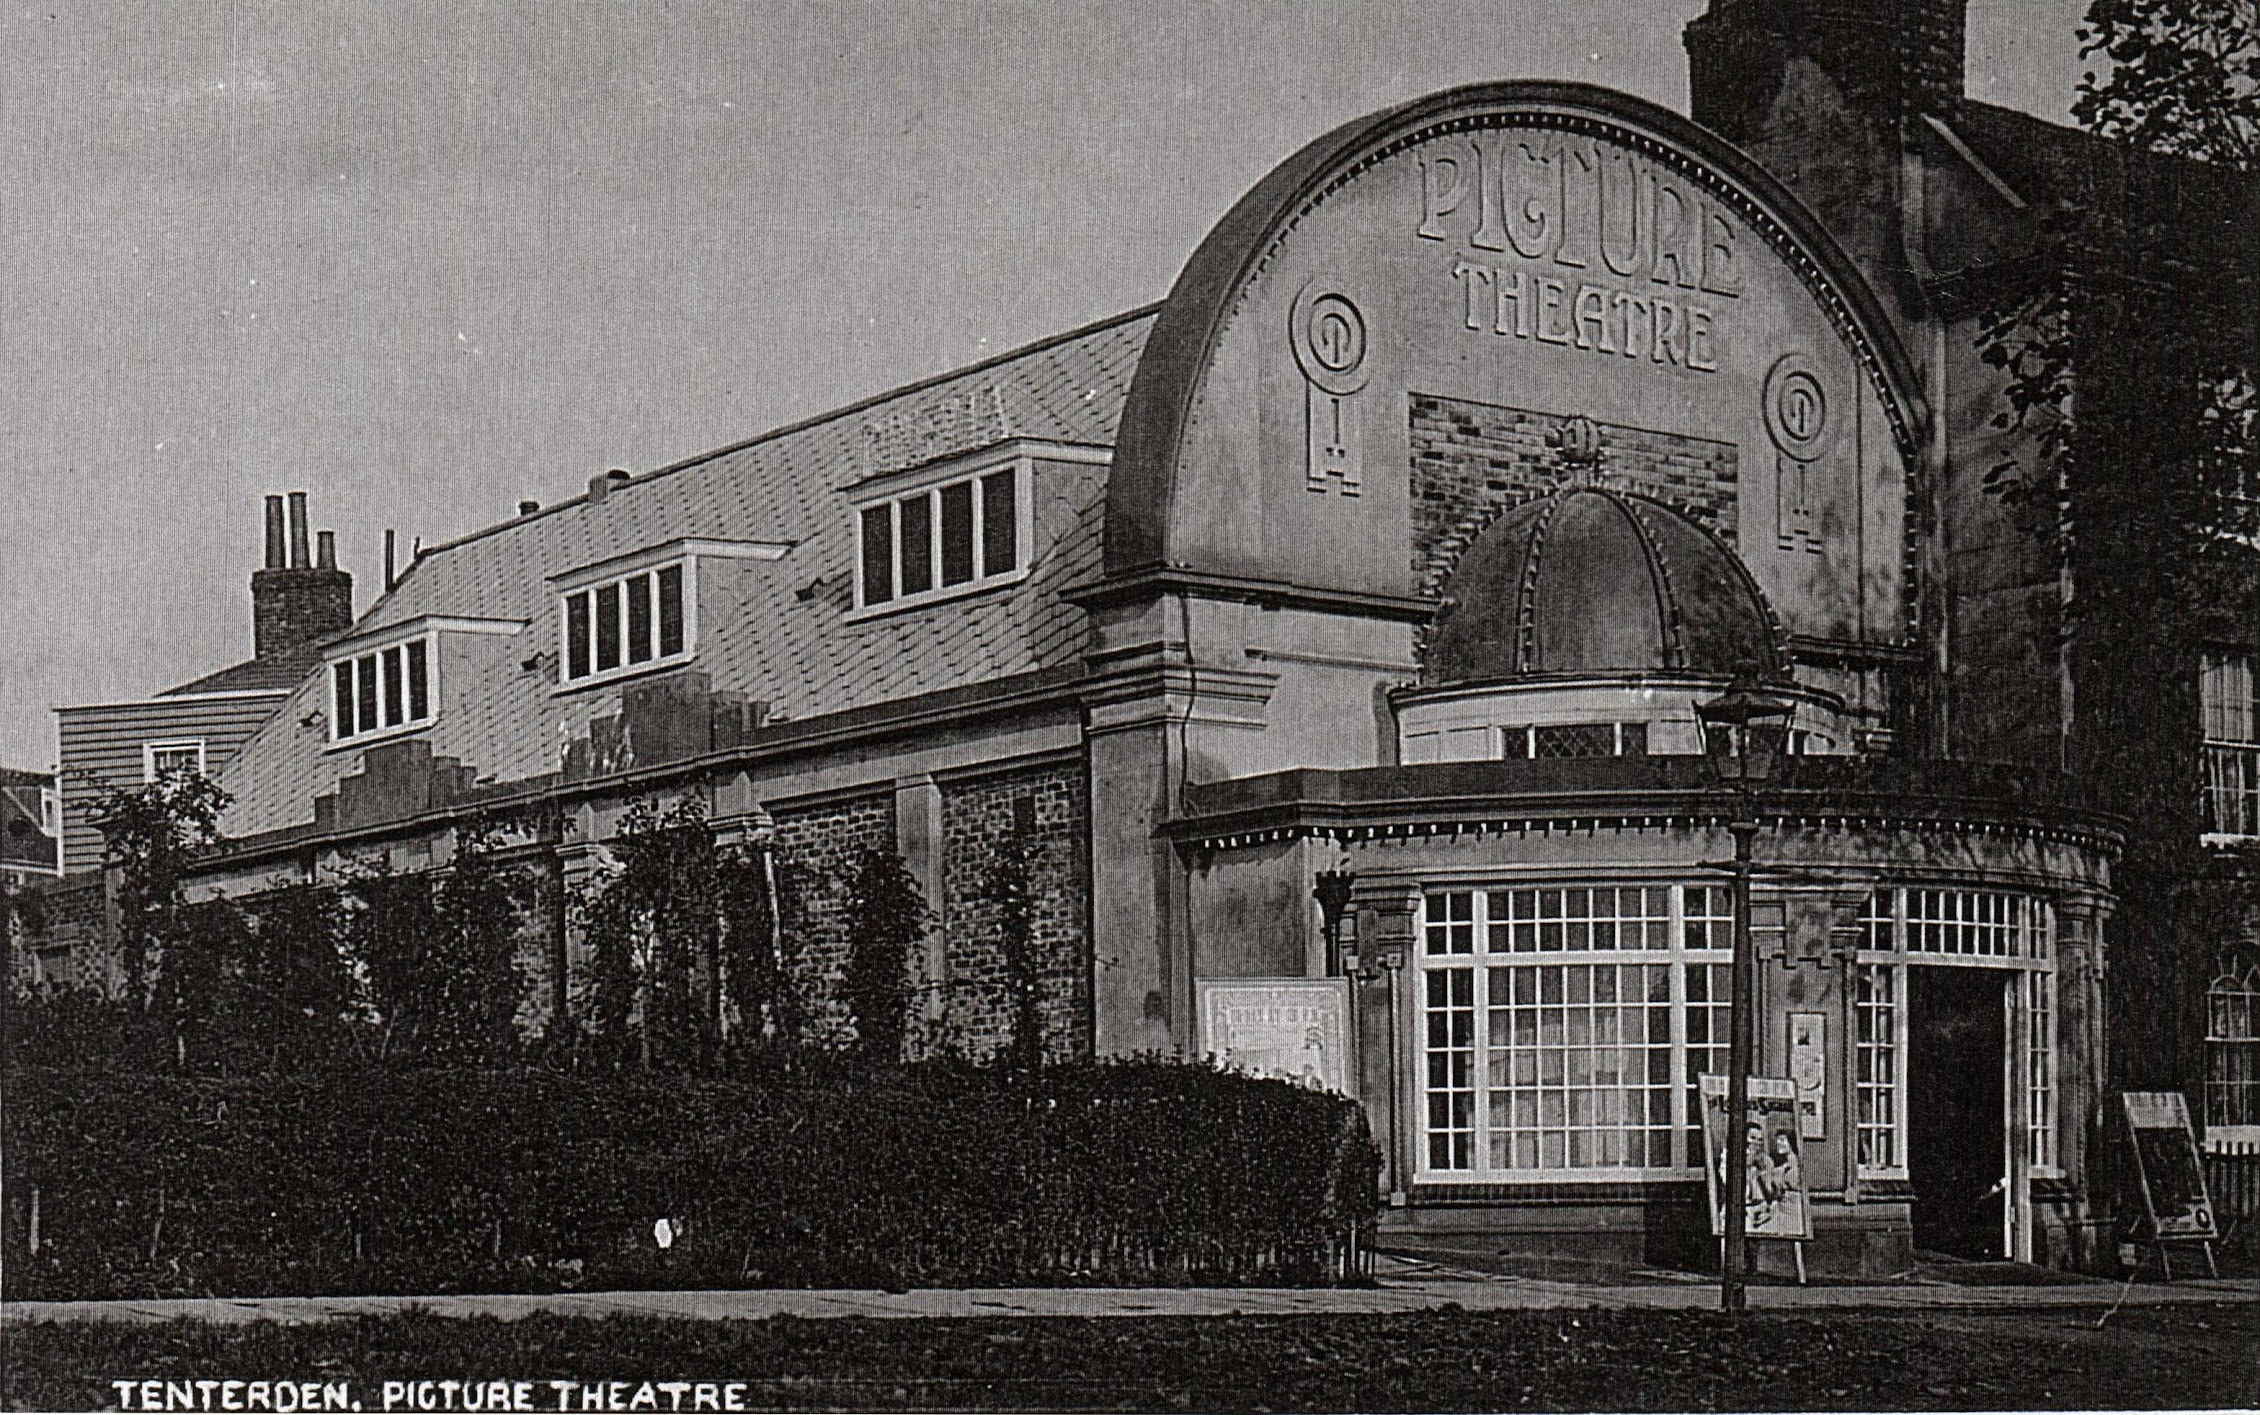 Electric Palace Cinema Tenterden, Cinema Palace